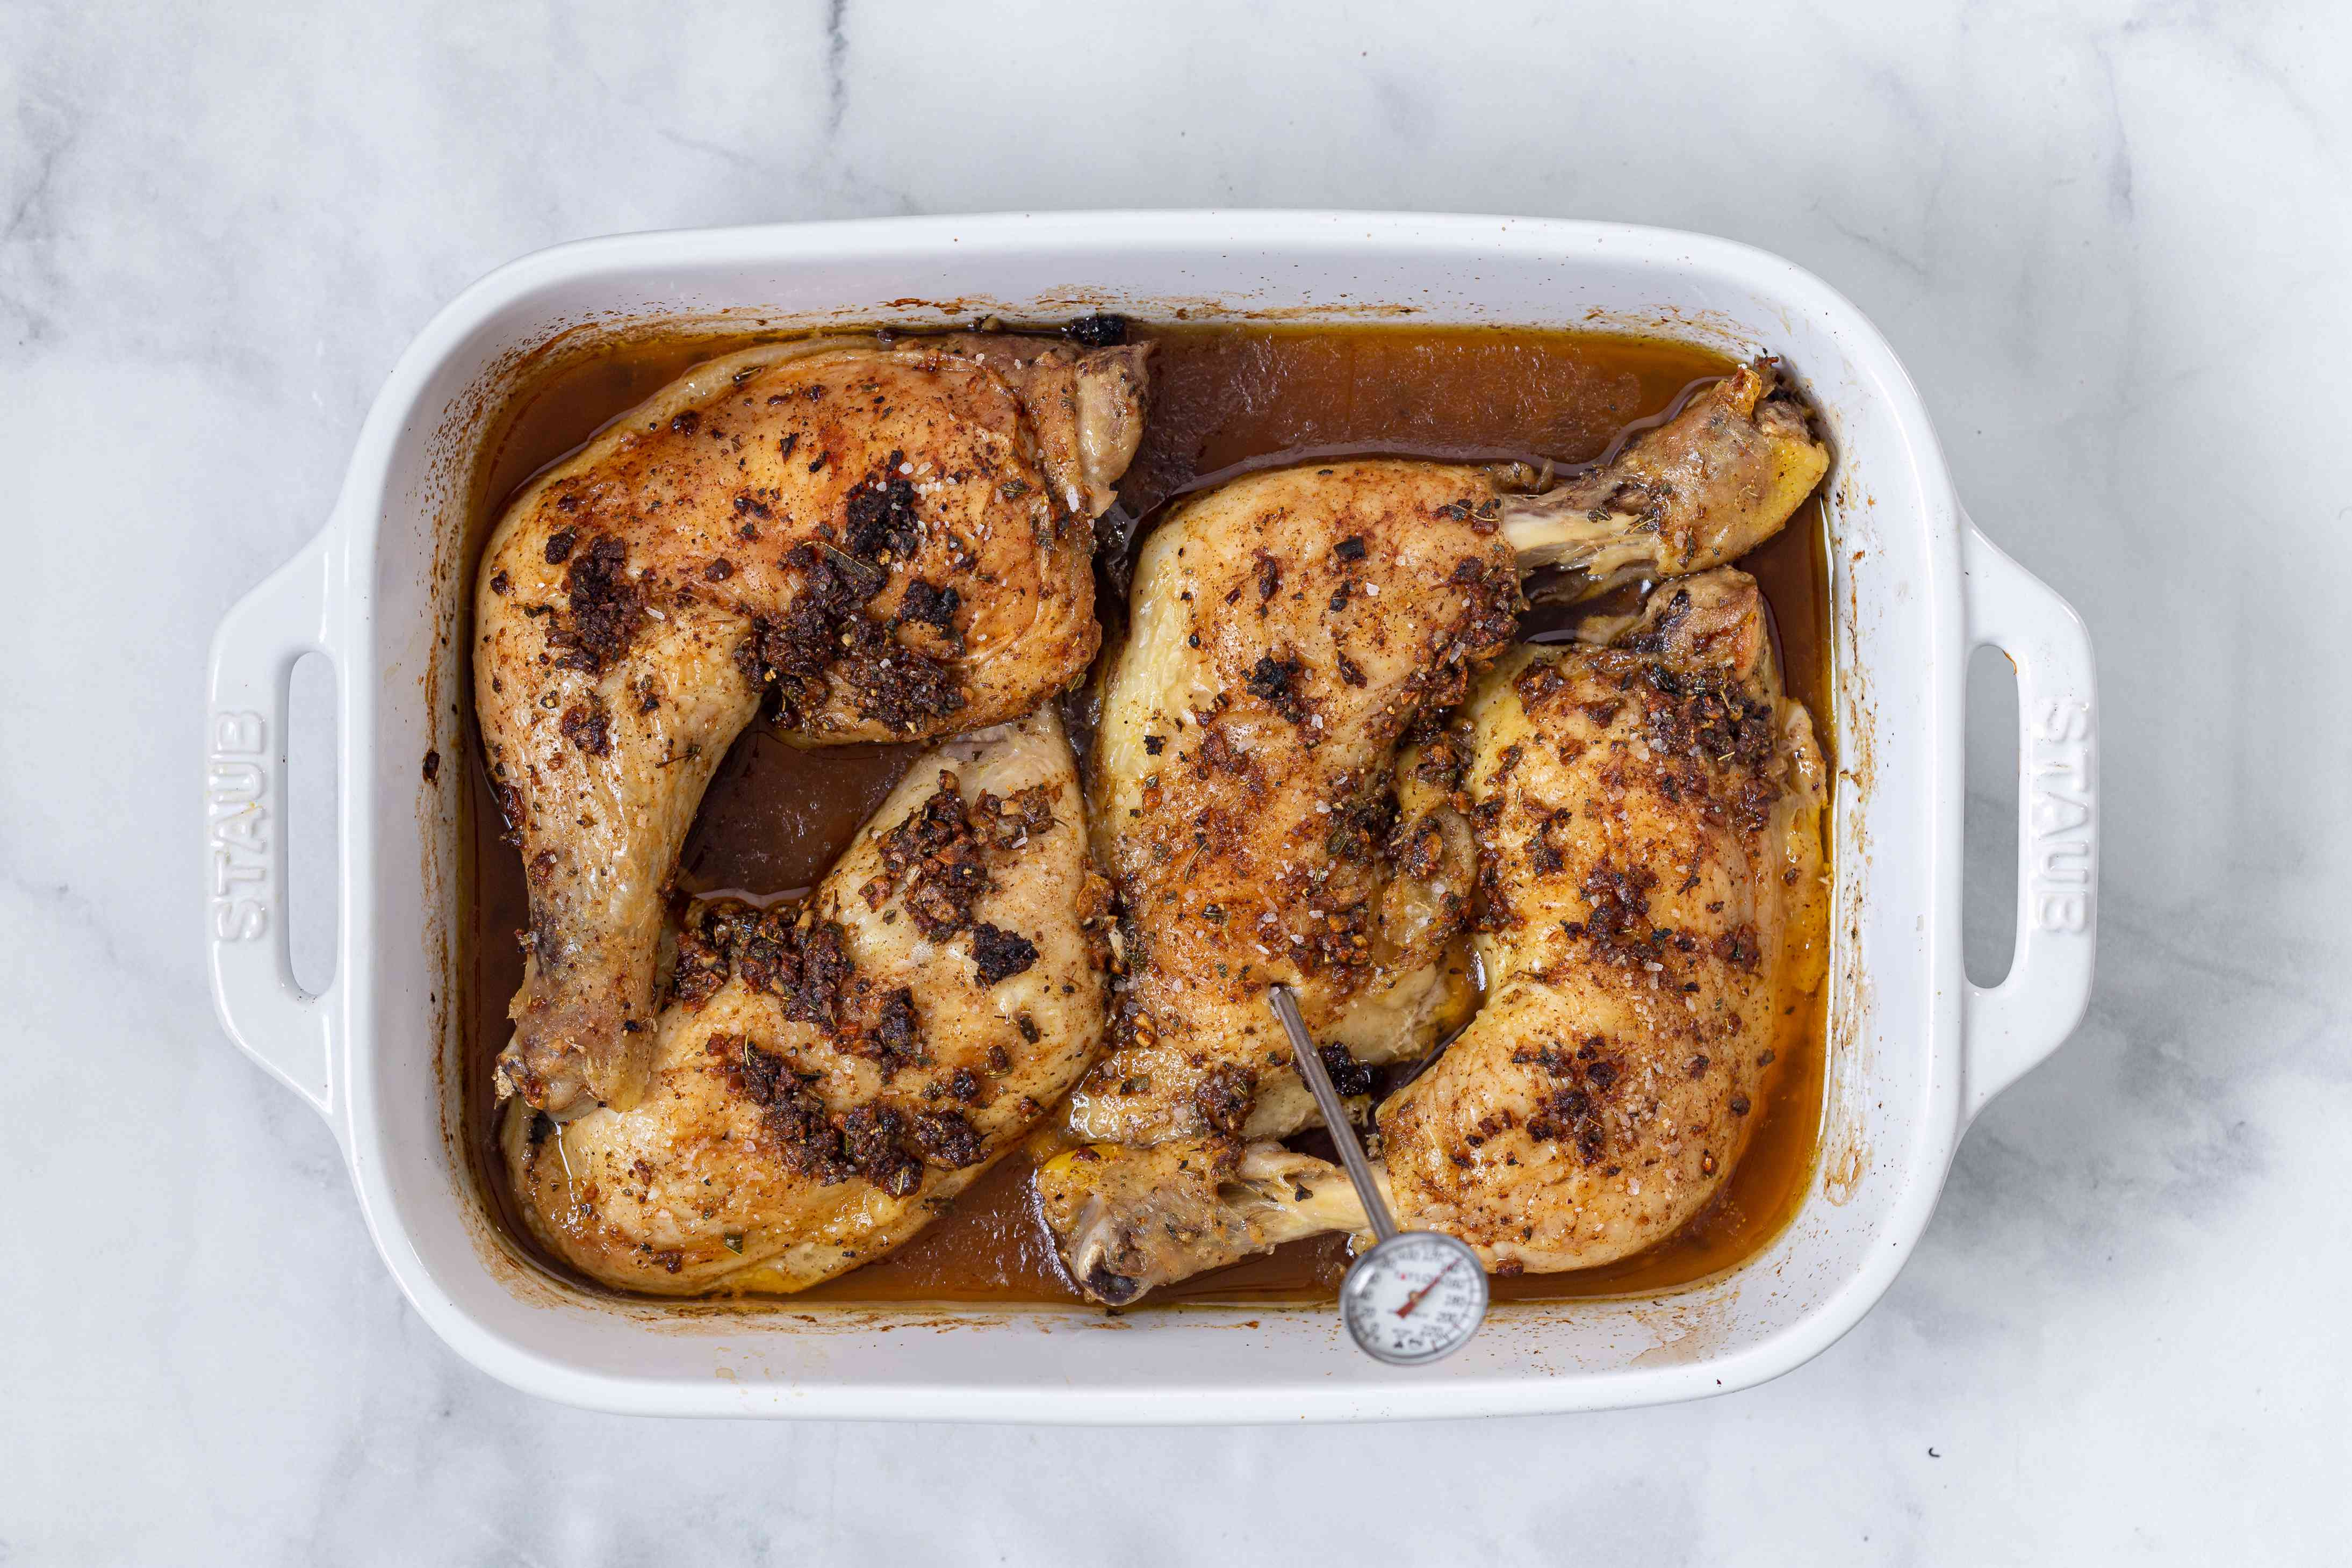 Baked chicken with a thermometer inserted